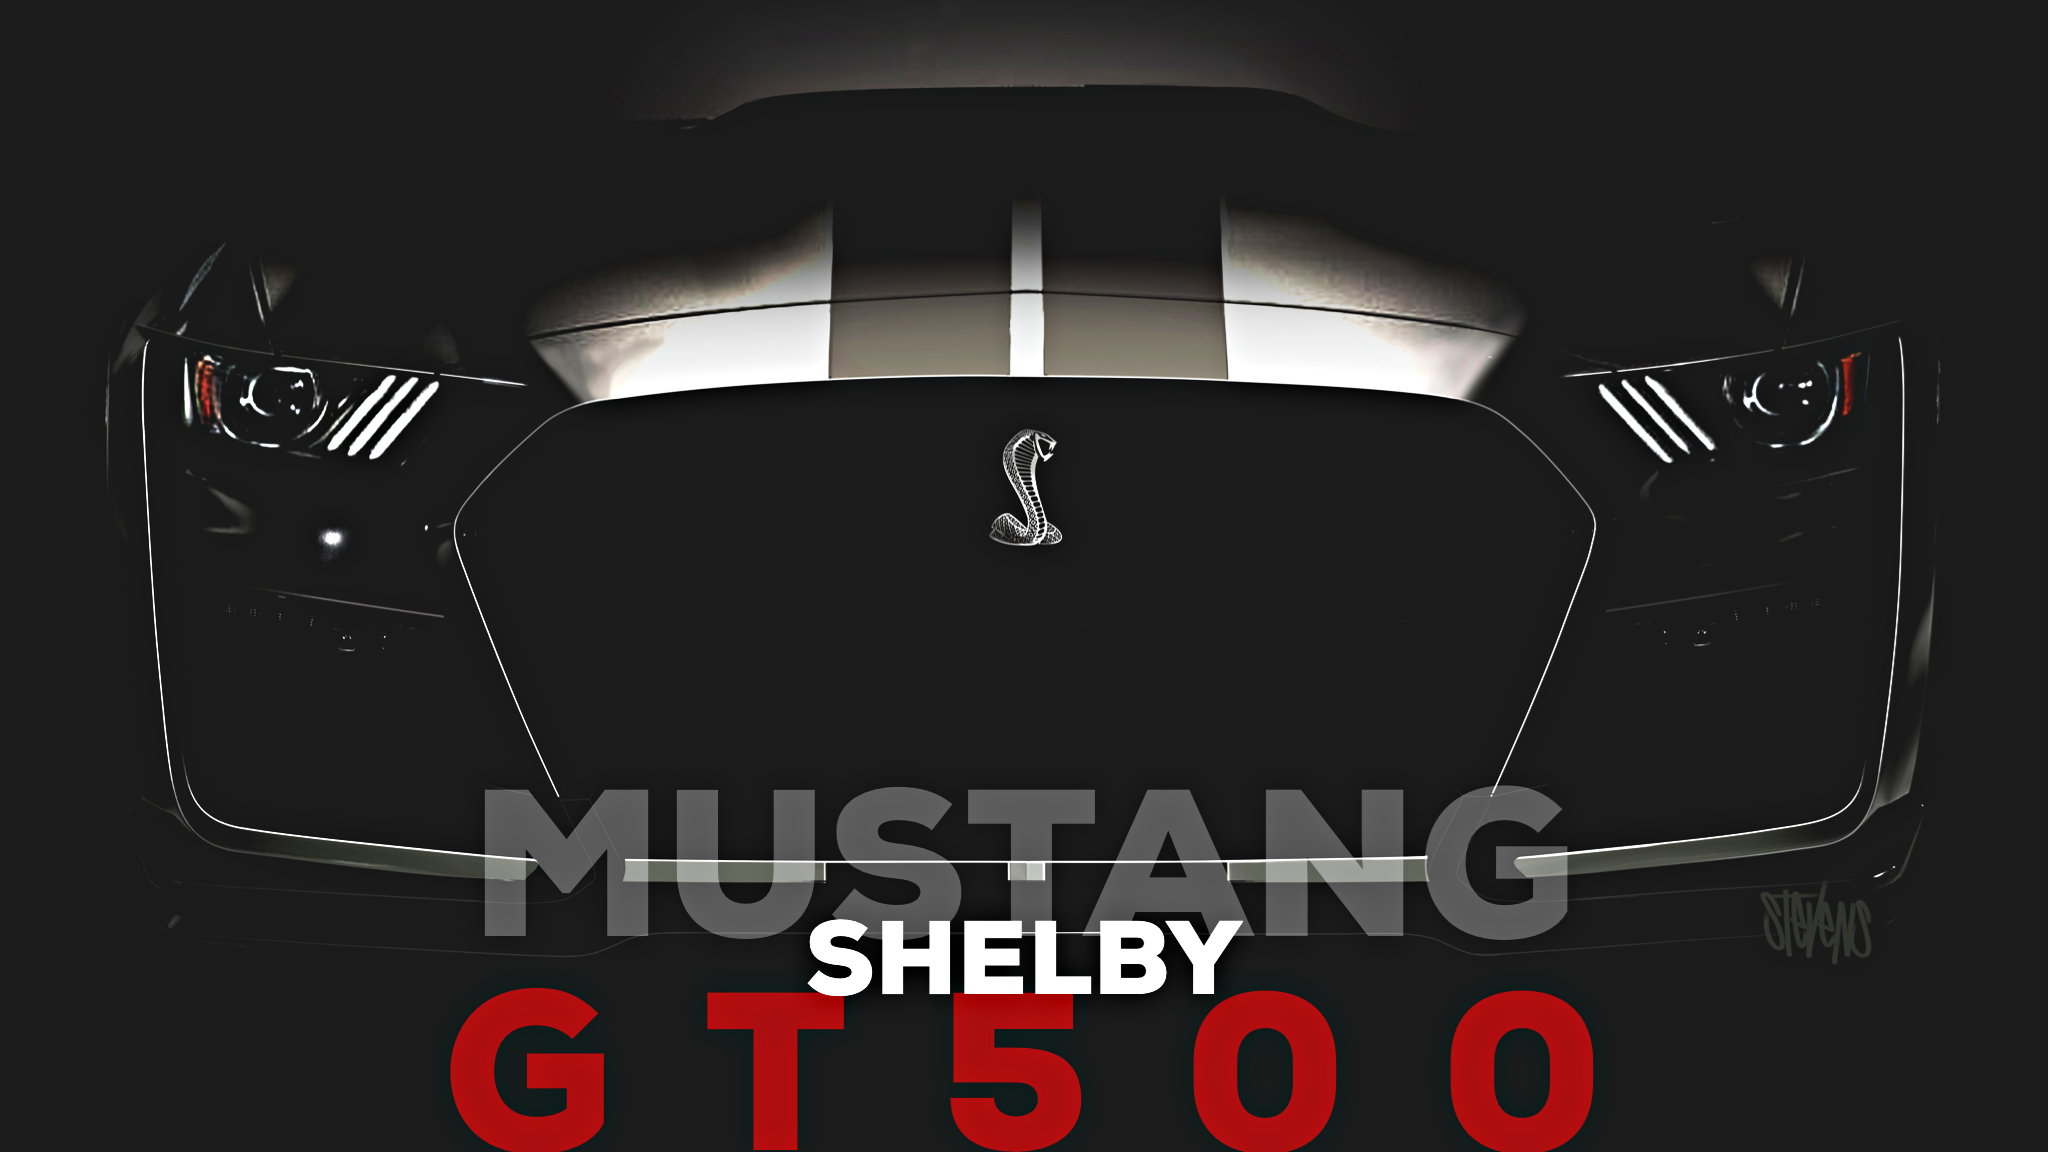 Ford Teases Mustang Shelby GT500